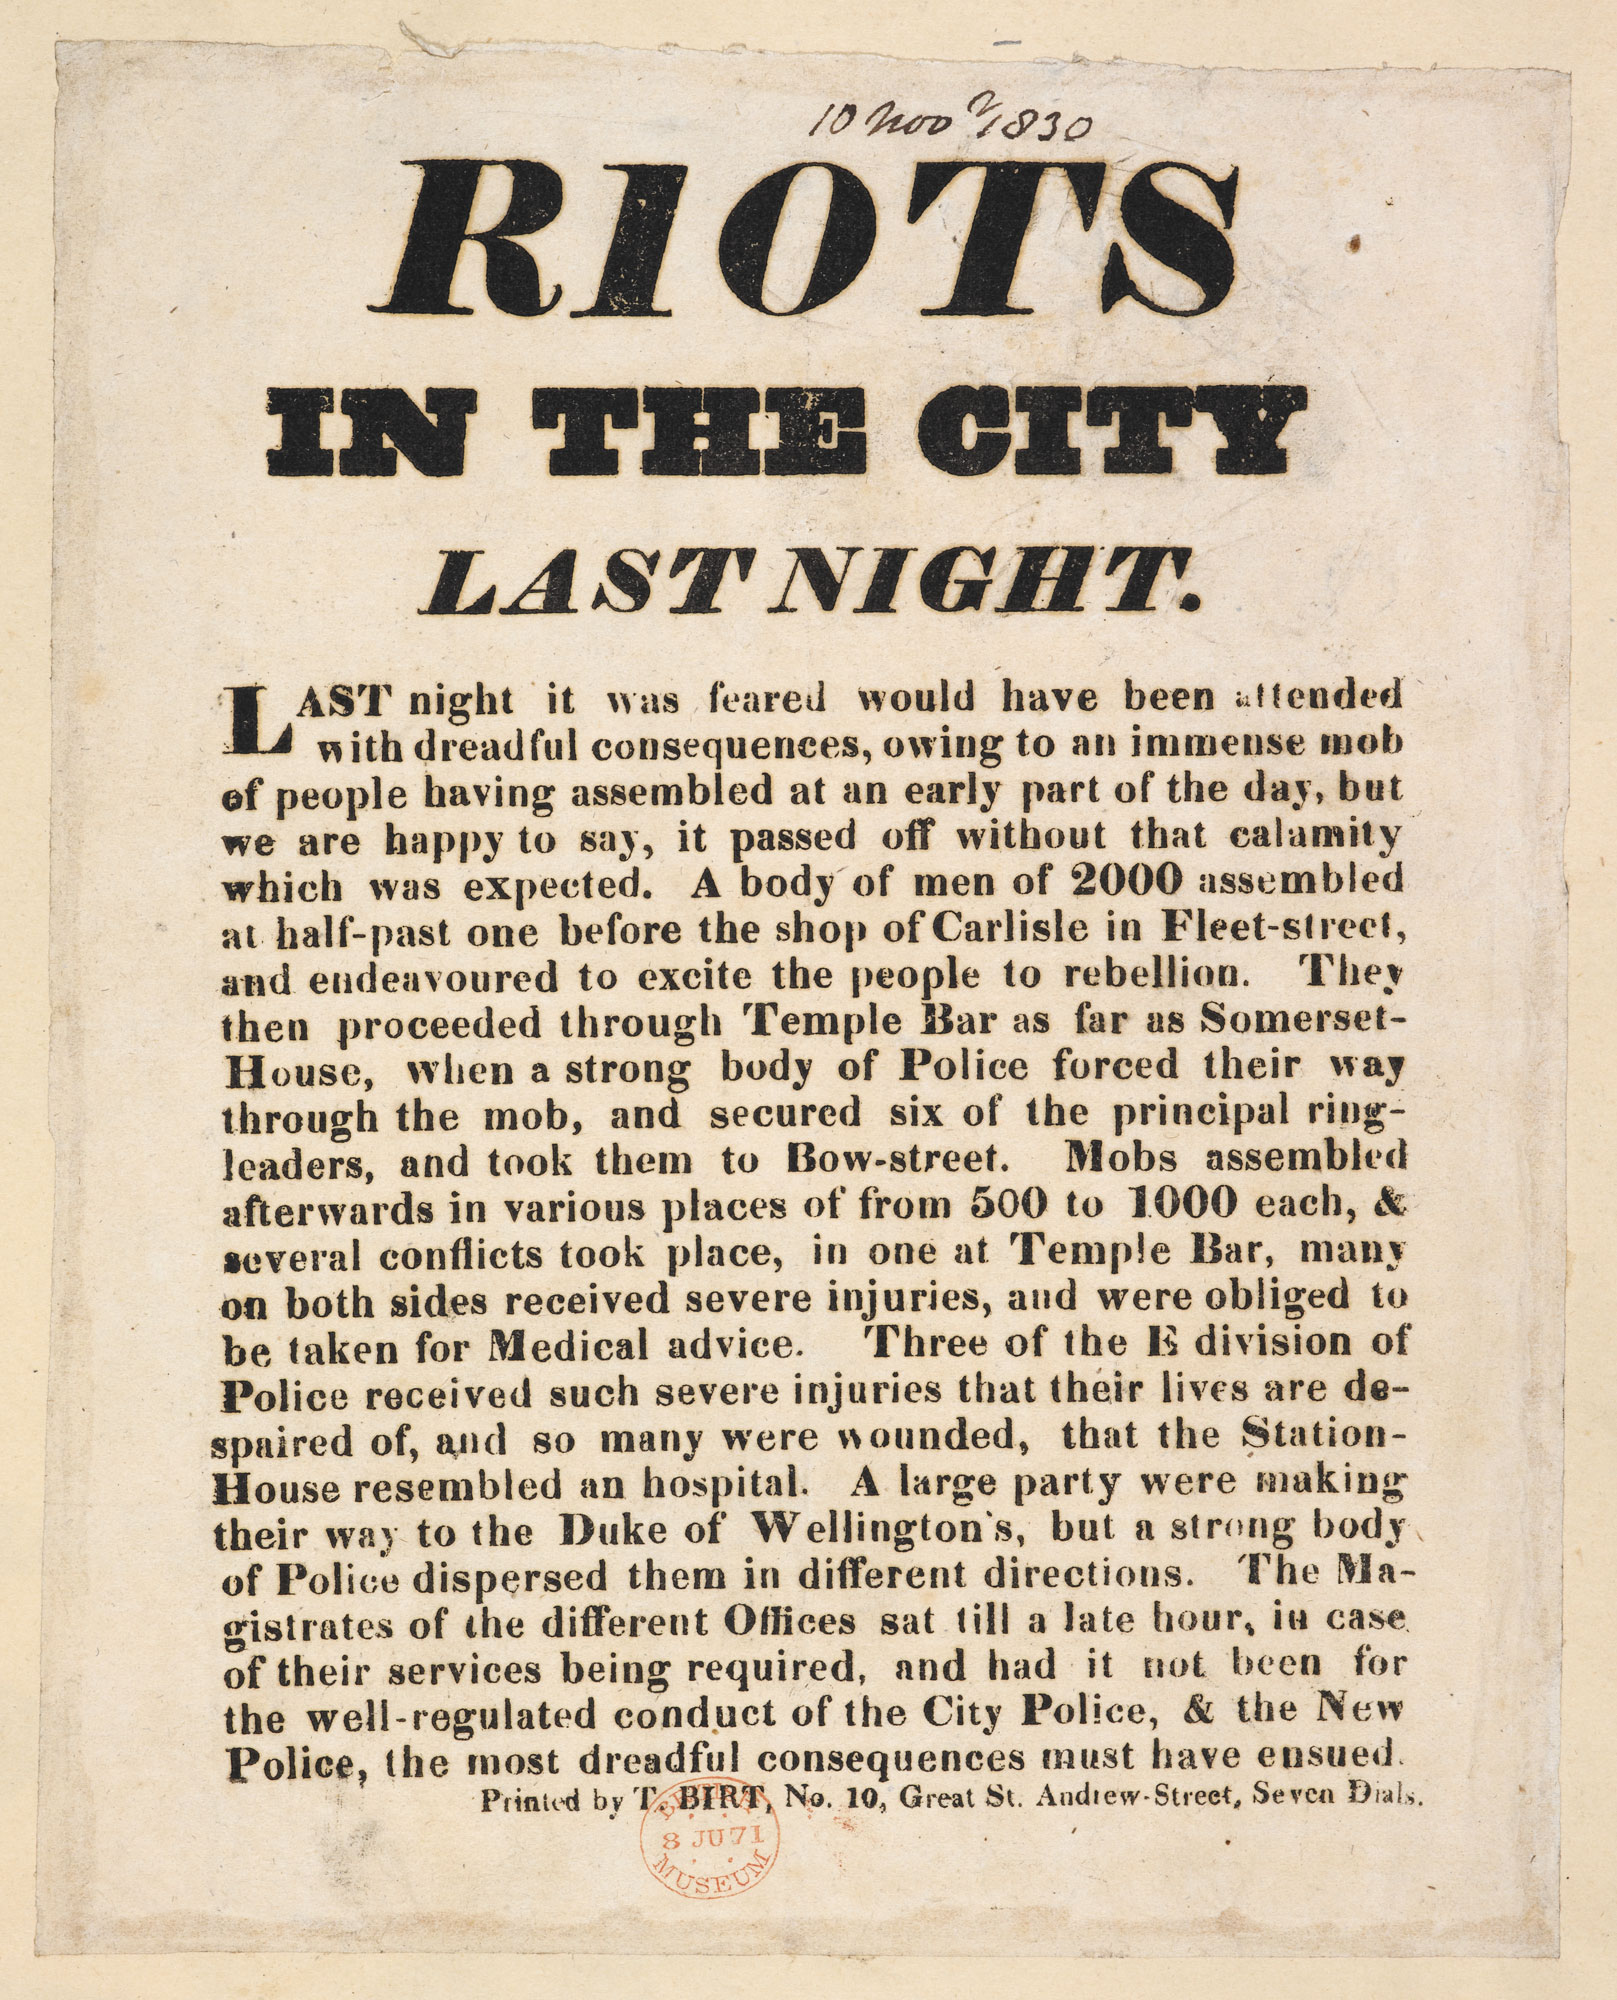 Riots in the City last night [page: single sheet]